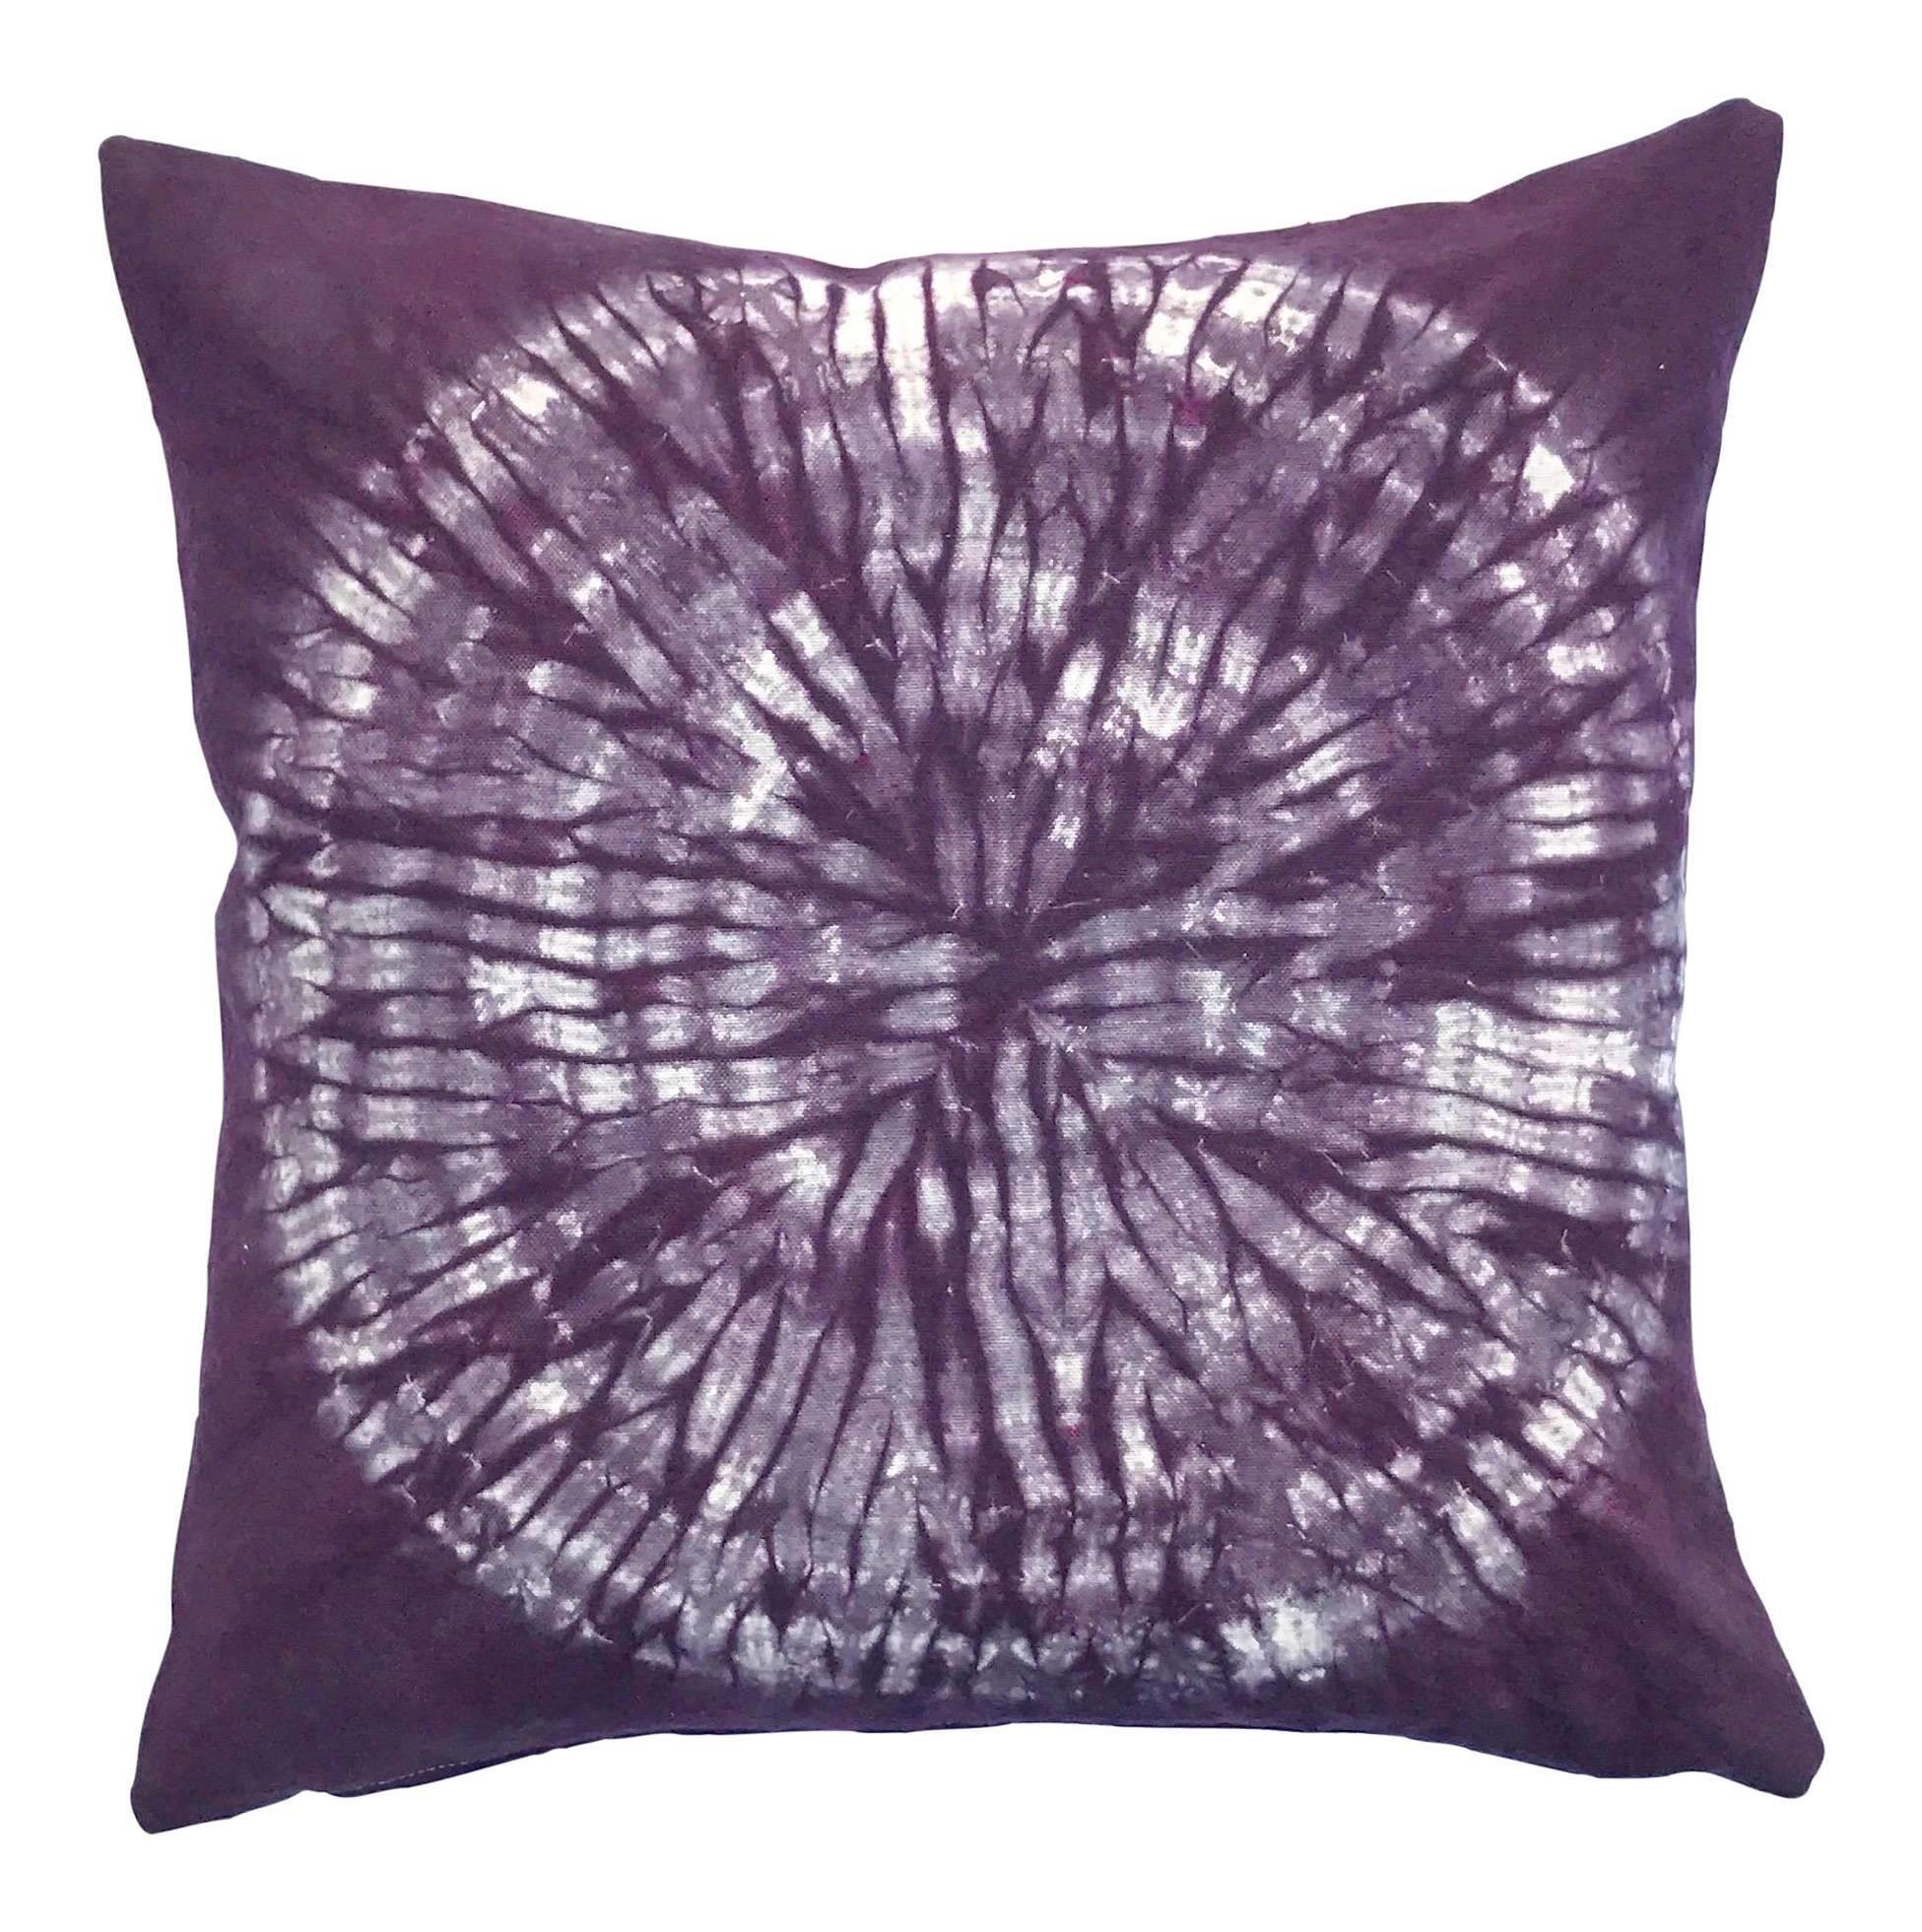 Eggplant Nui Shibori Circle Pillow Cover Chairish : eggplant nui shibori circle pillow cover 9937 from www.chairish.com size 1951 x 1961 png 3613kB